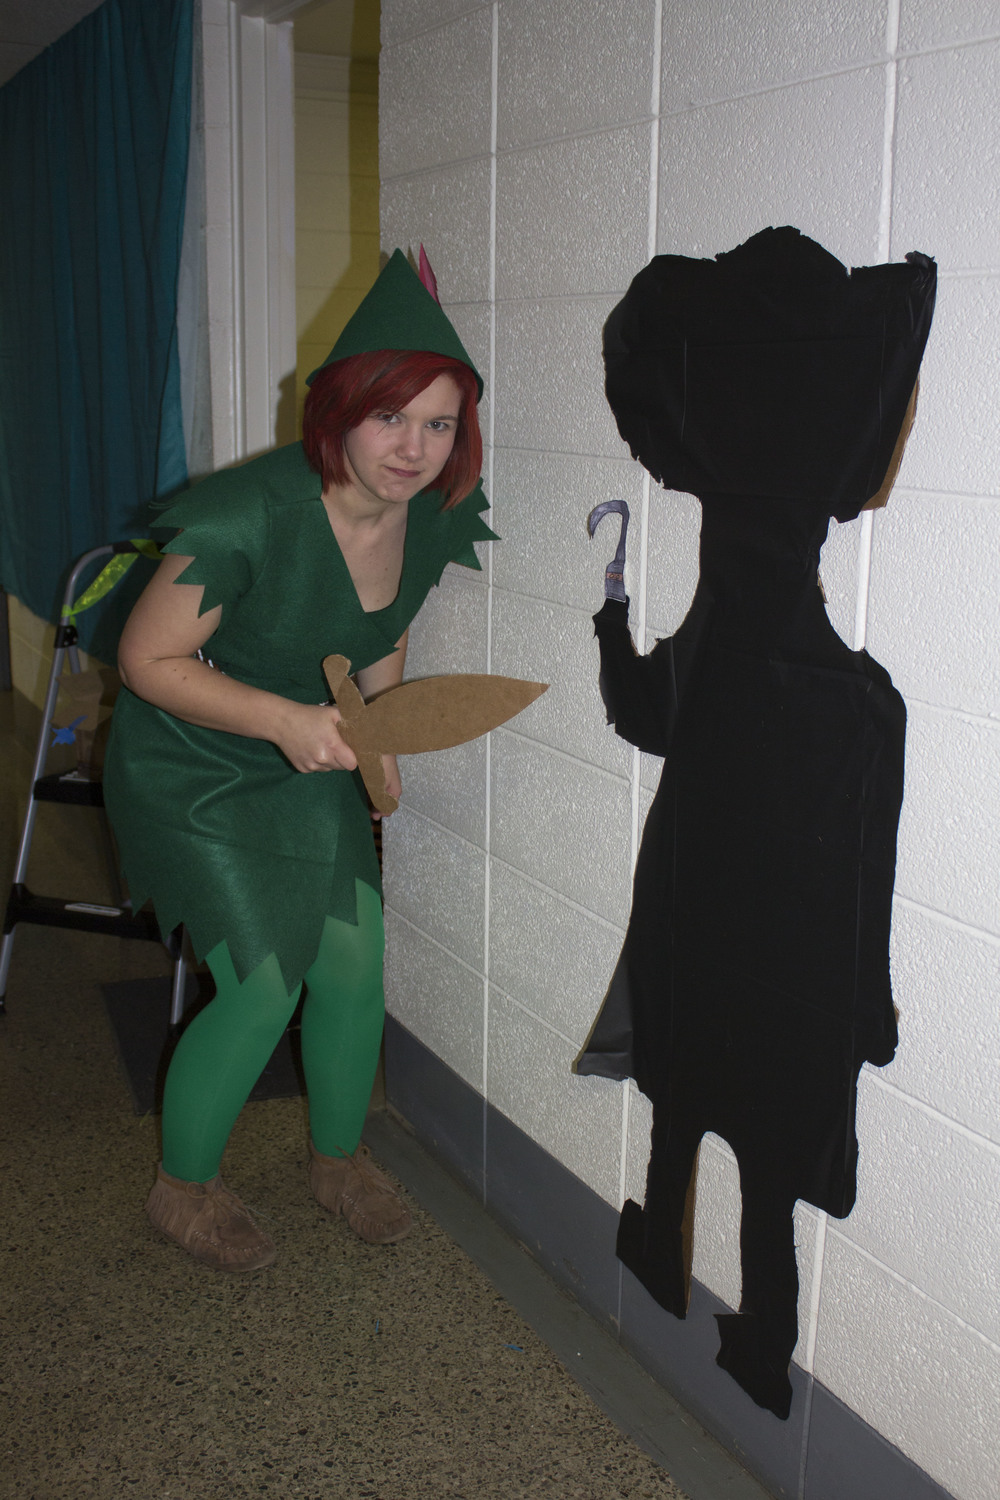 Sophomore Sela Estelle also finds her rival Captain Hook she squares off with.